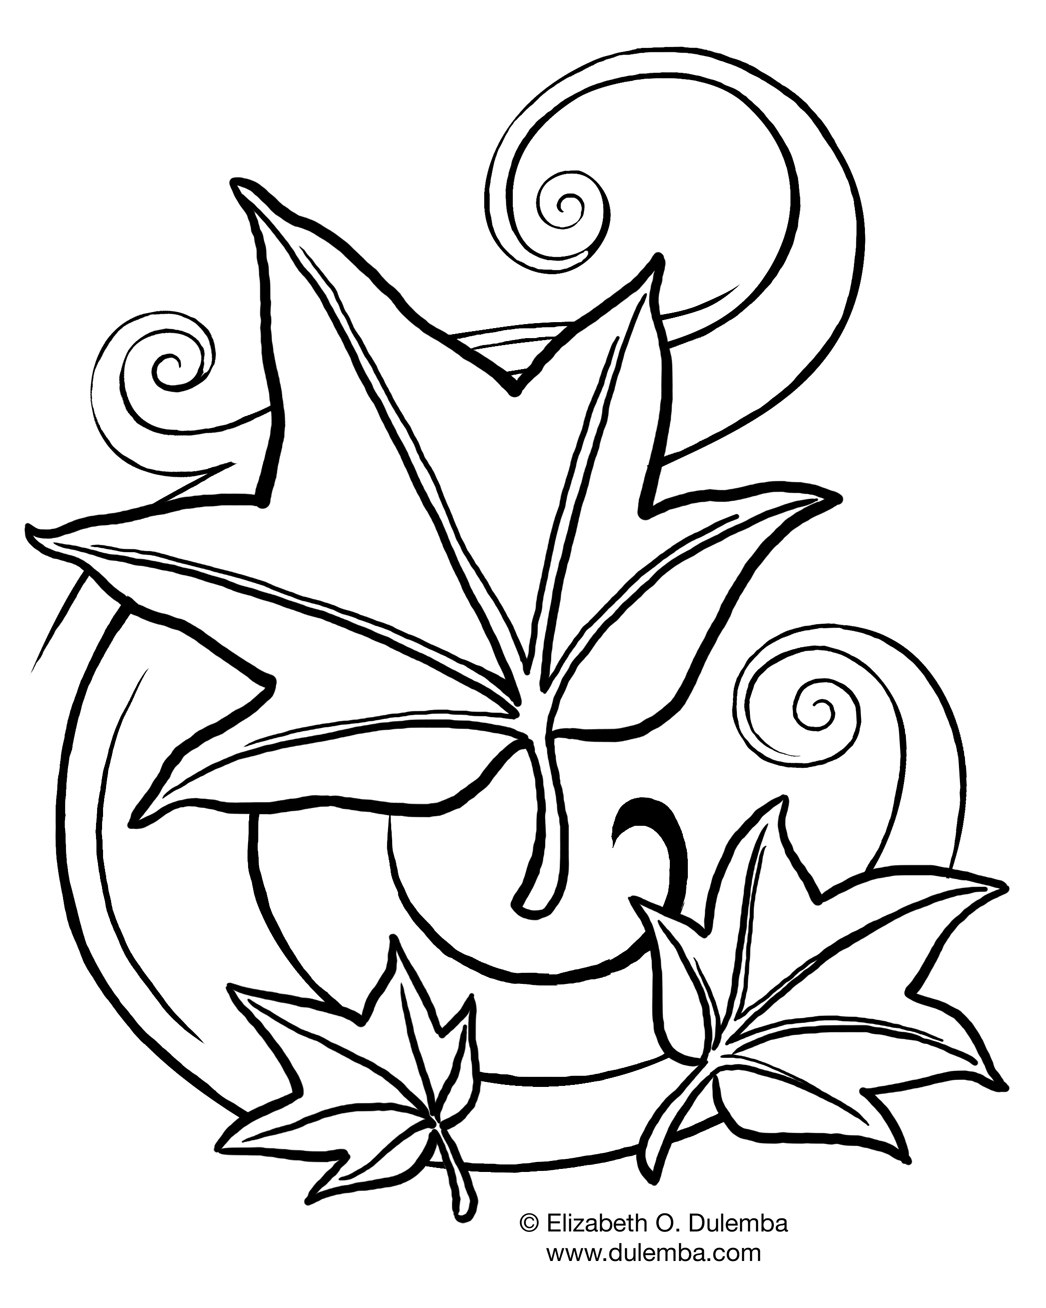 September Coloring Pages New September Coloring Pages To Download And Print For Free Design Ideas